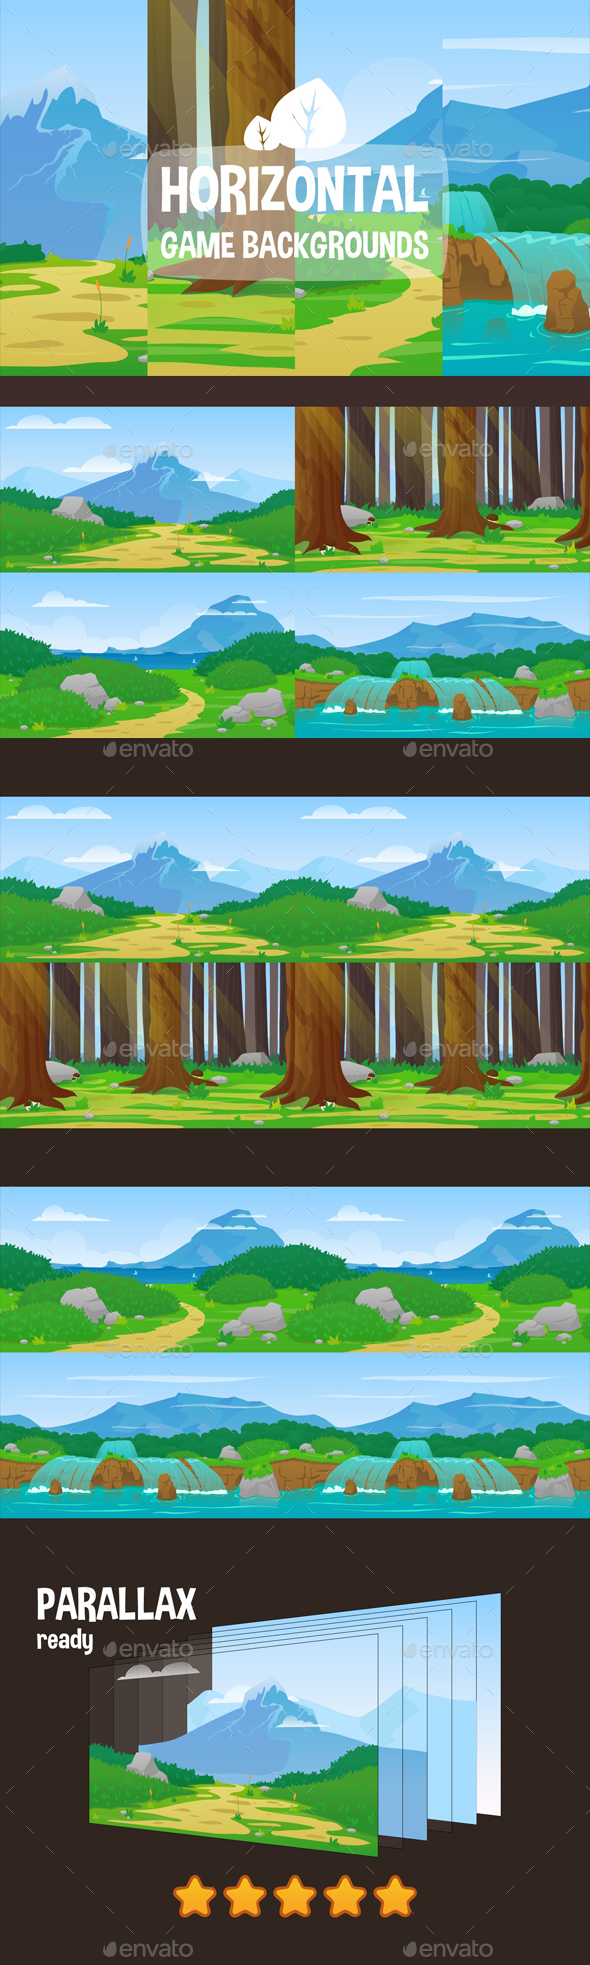 GraphicRiver Horizontal Game Backgrounds 20869794